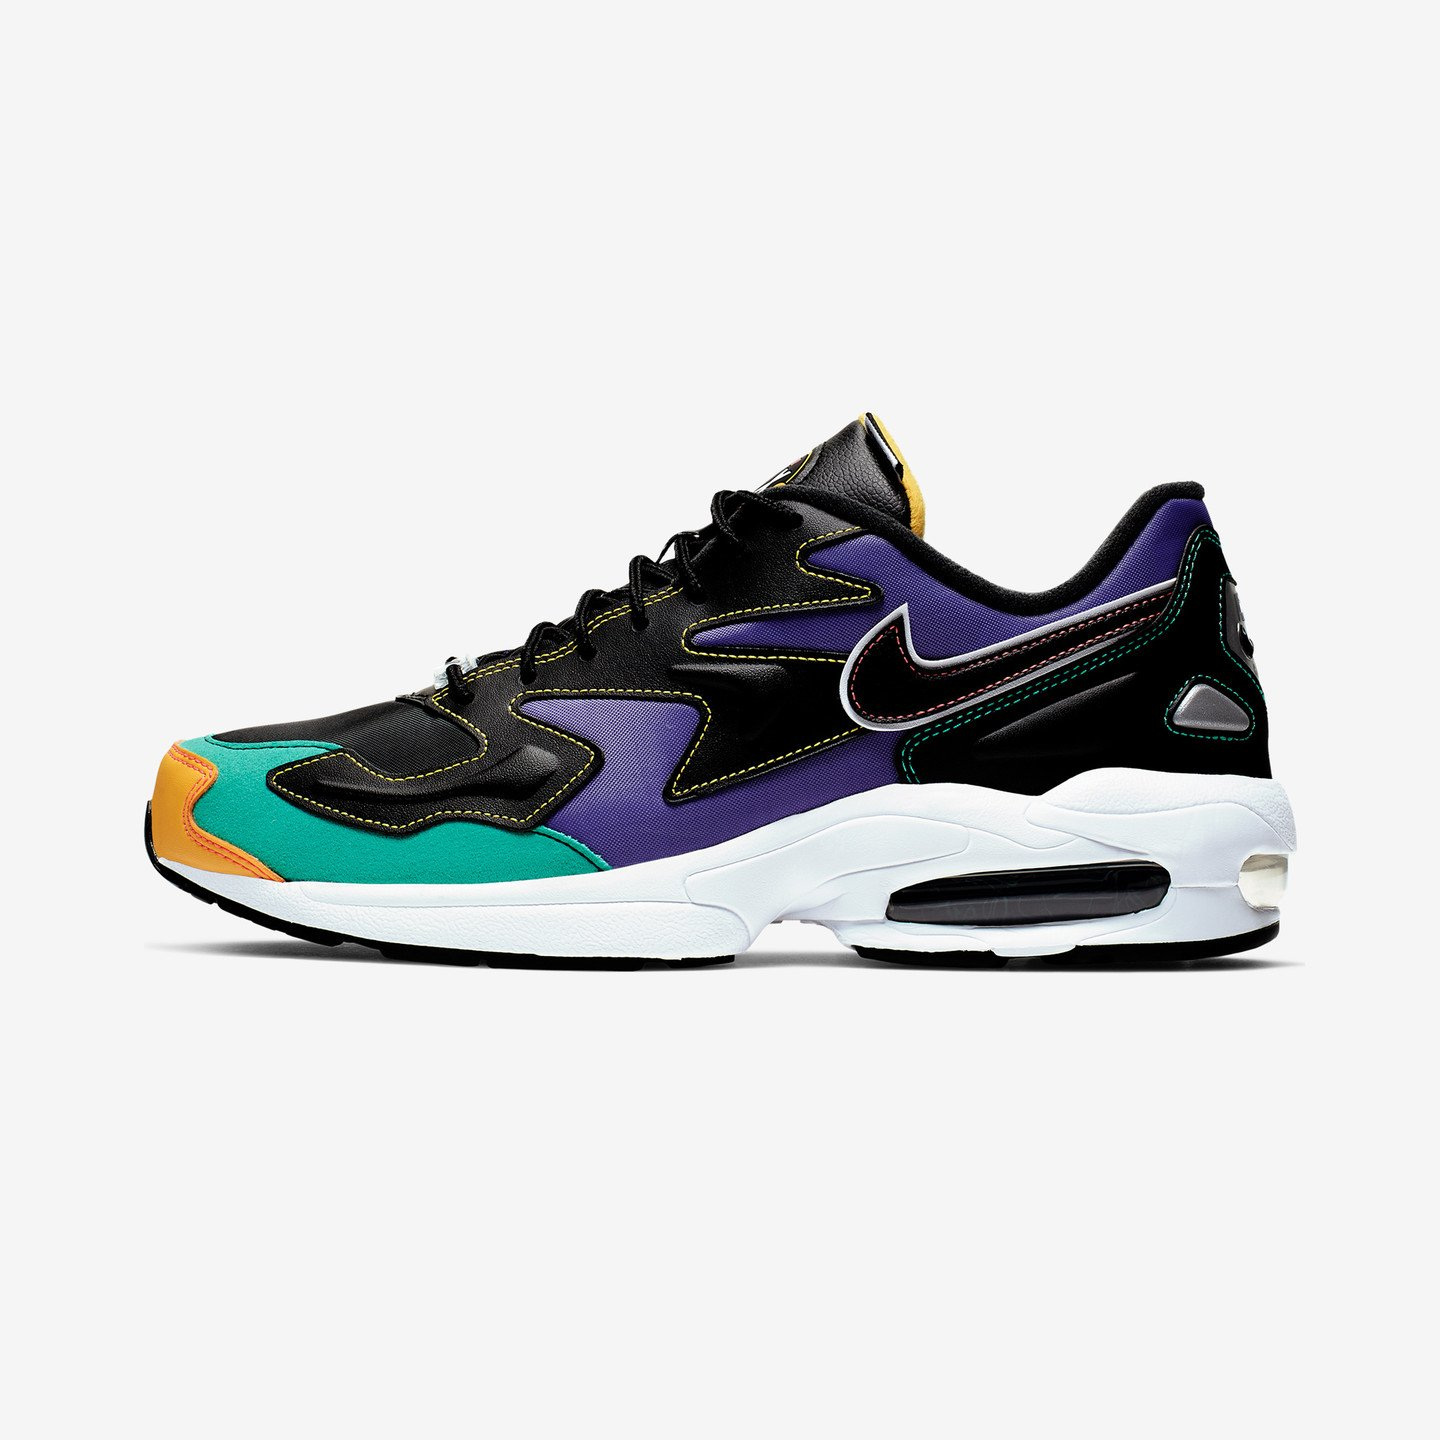 Nike Air Max 2 Light Premium Black / Flash Crimson / Kinetic Green BV0987-023